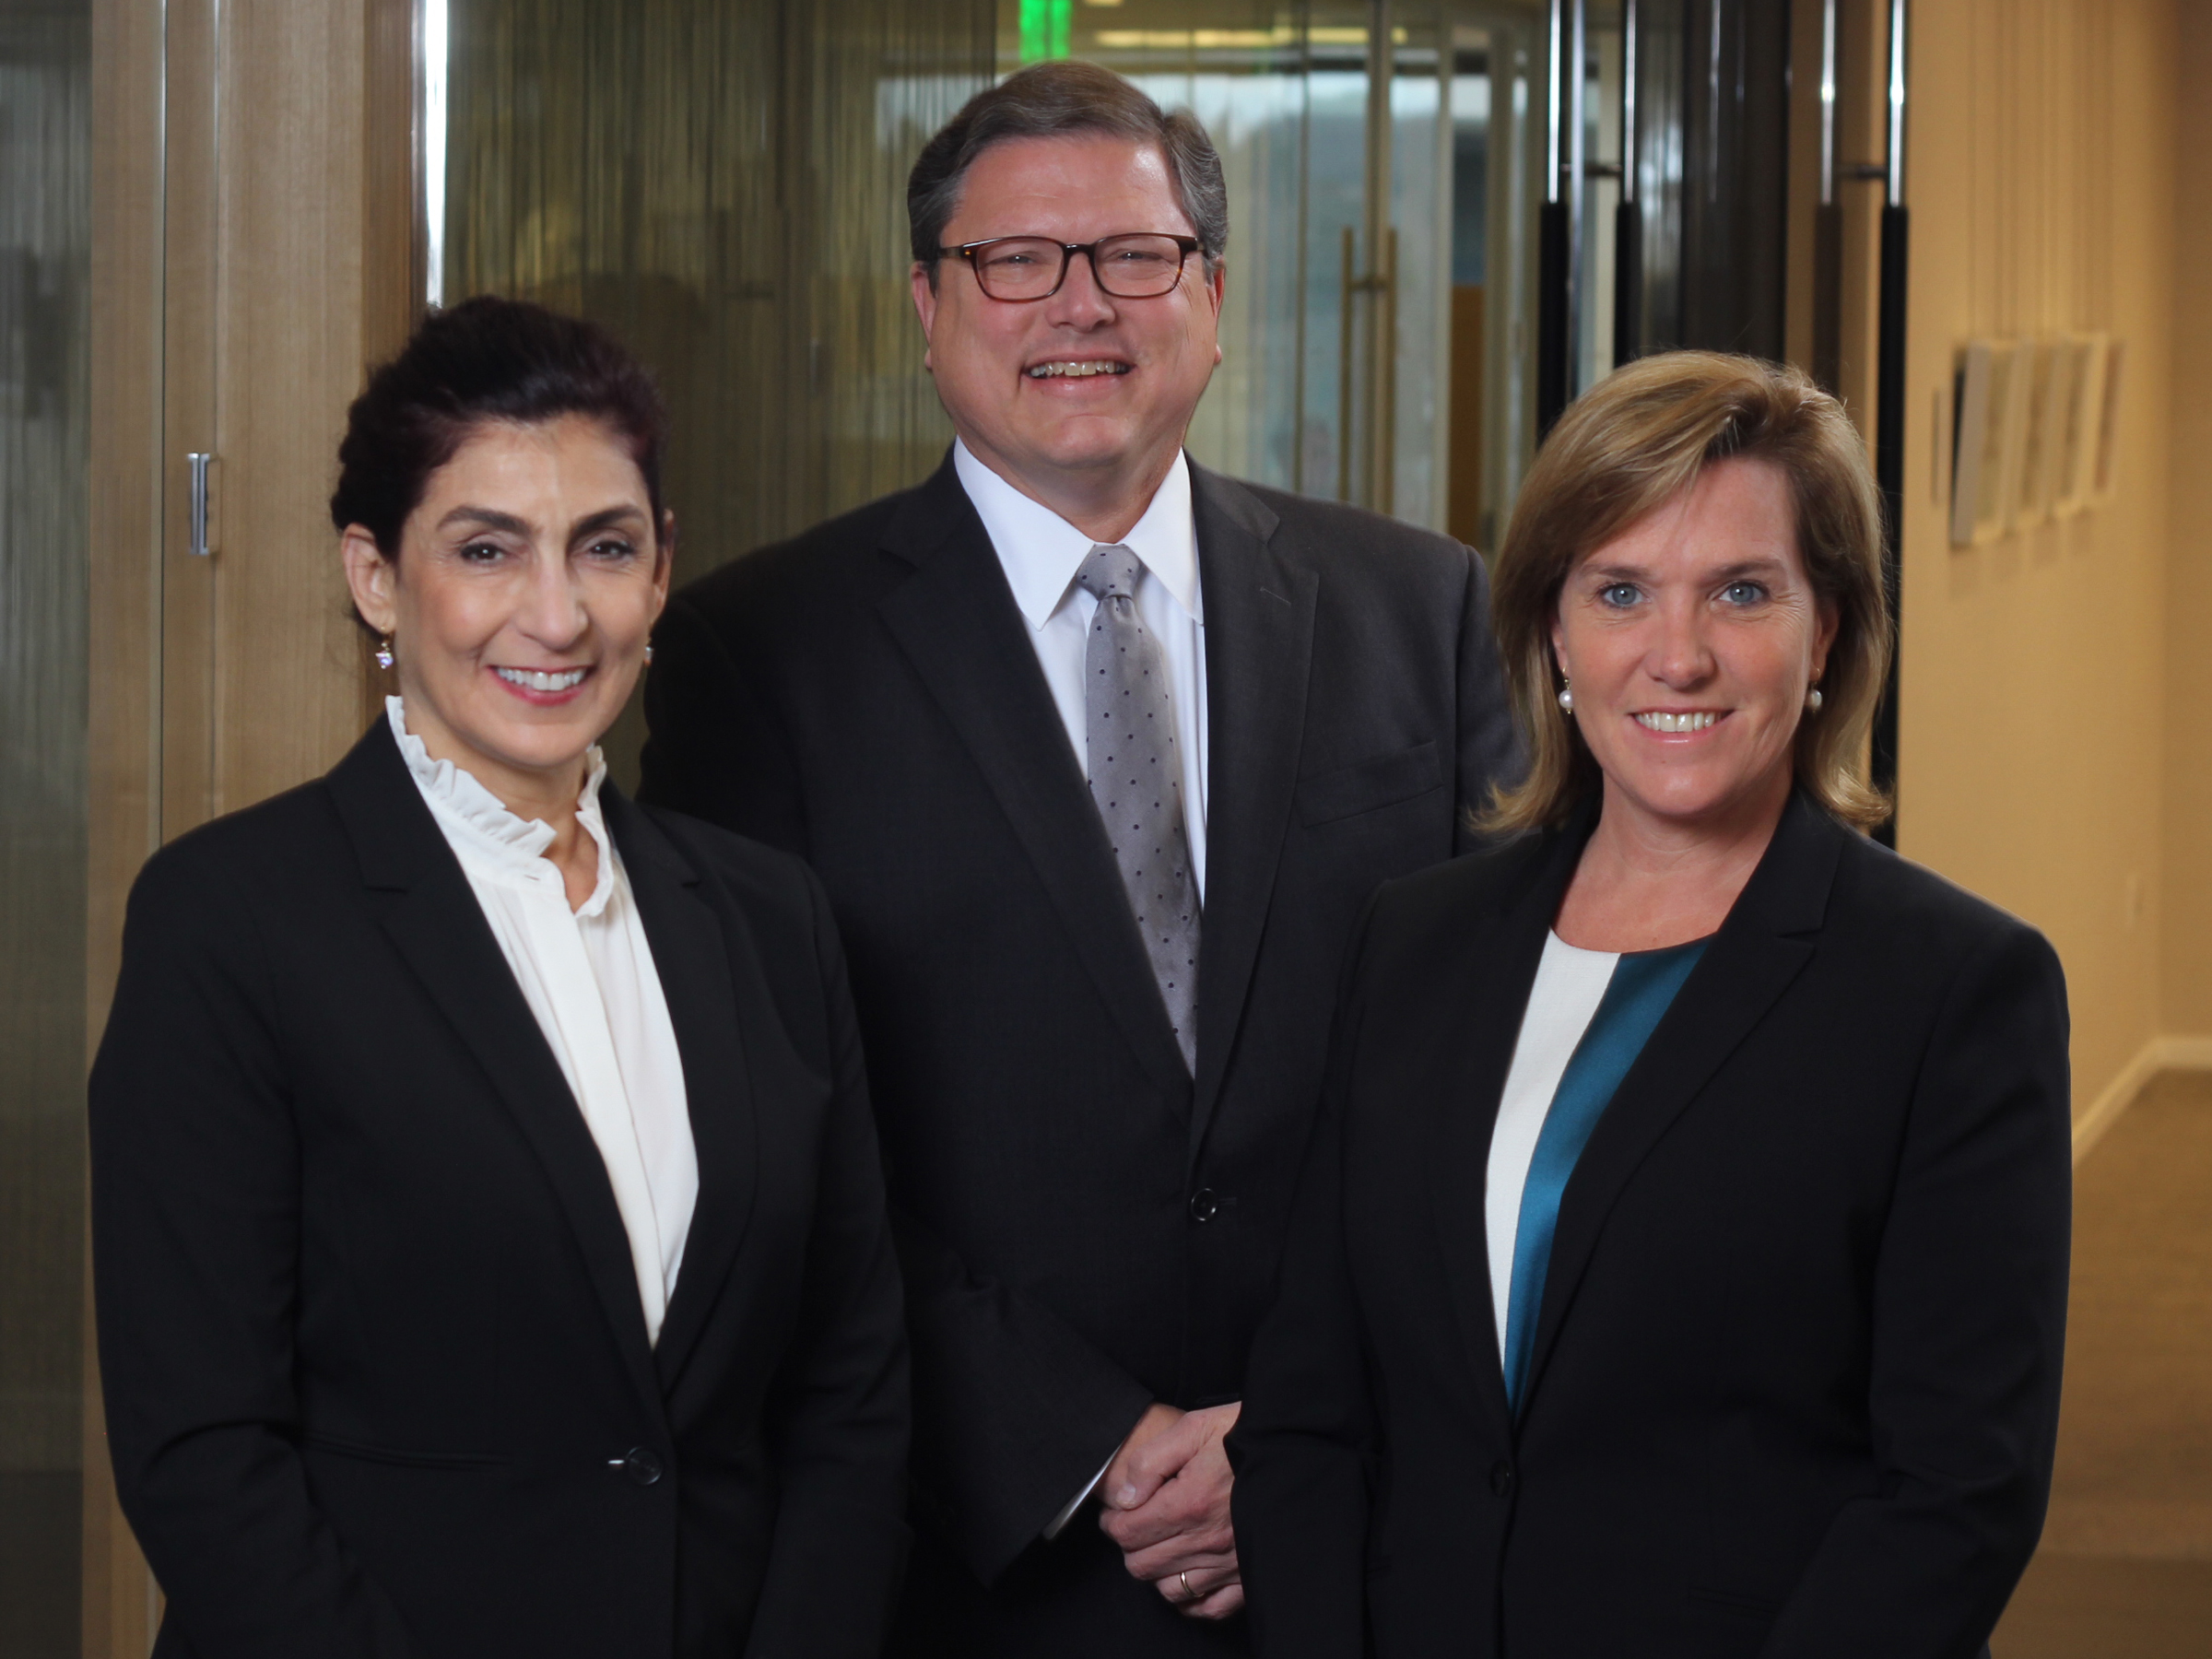 Edgewater Wealth Management Charles McCool, Kristin Bloom, Angela M. Kelly, Emma Rose Leibell